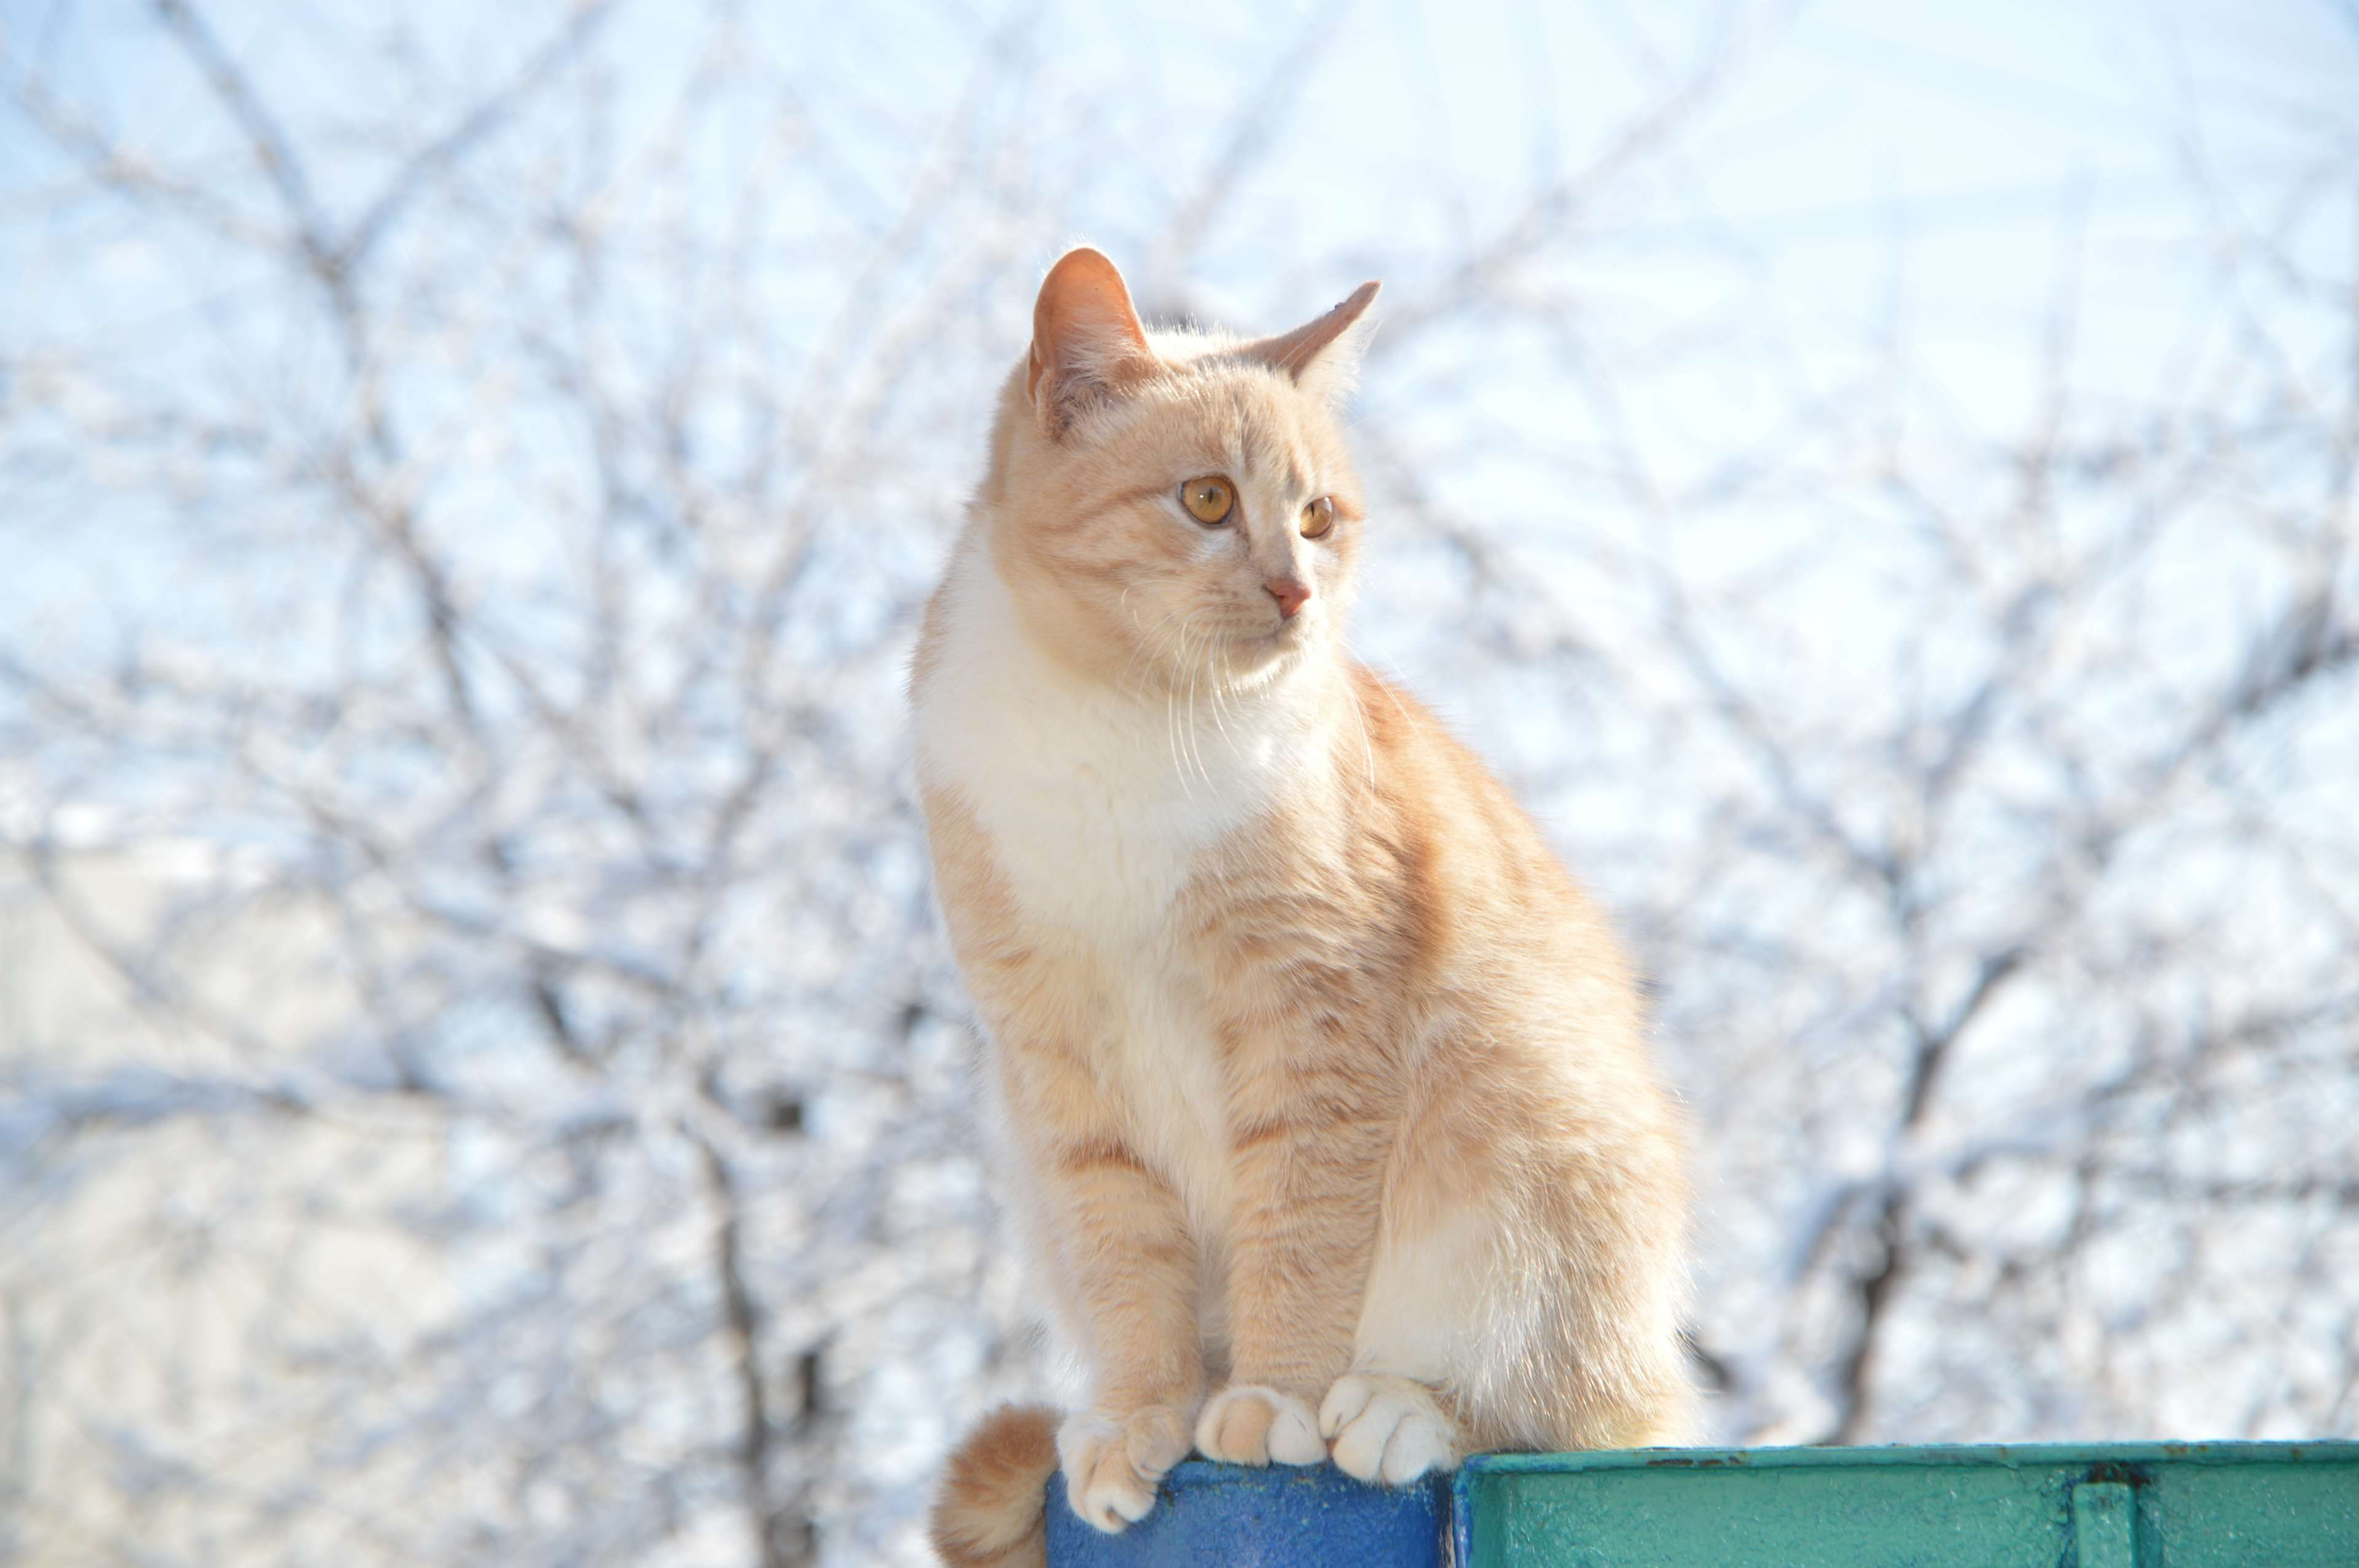 Cat Housecat Nature Pet Red Headed Cat Redhead Stomach Young Cat